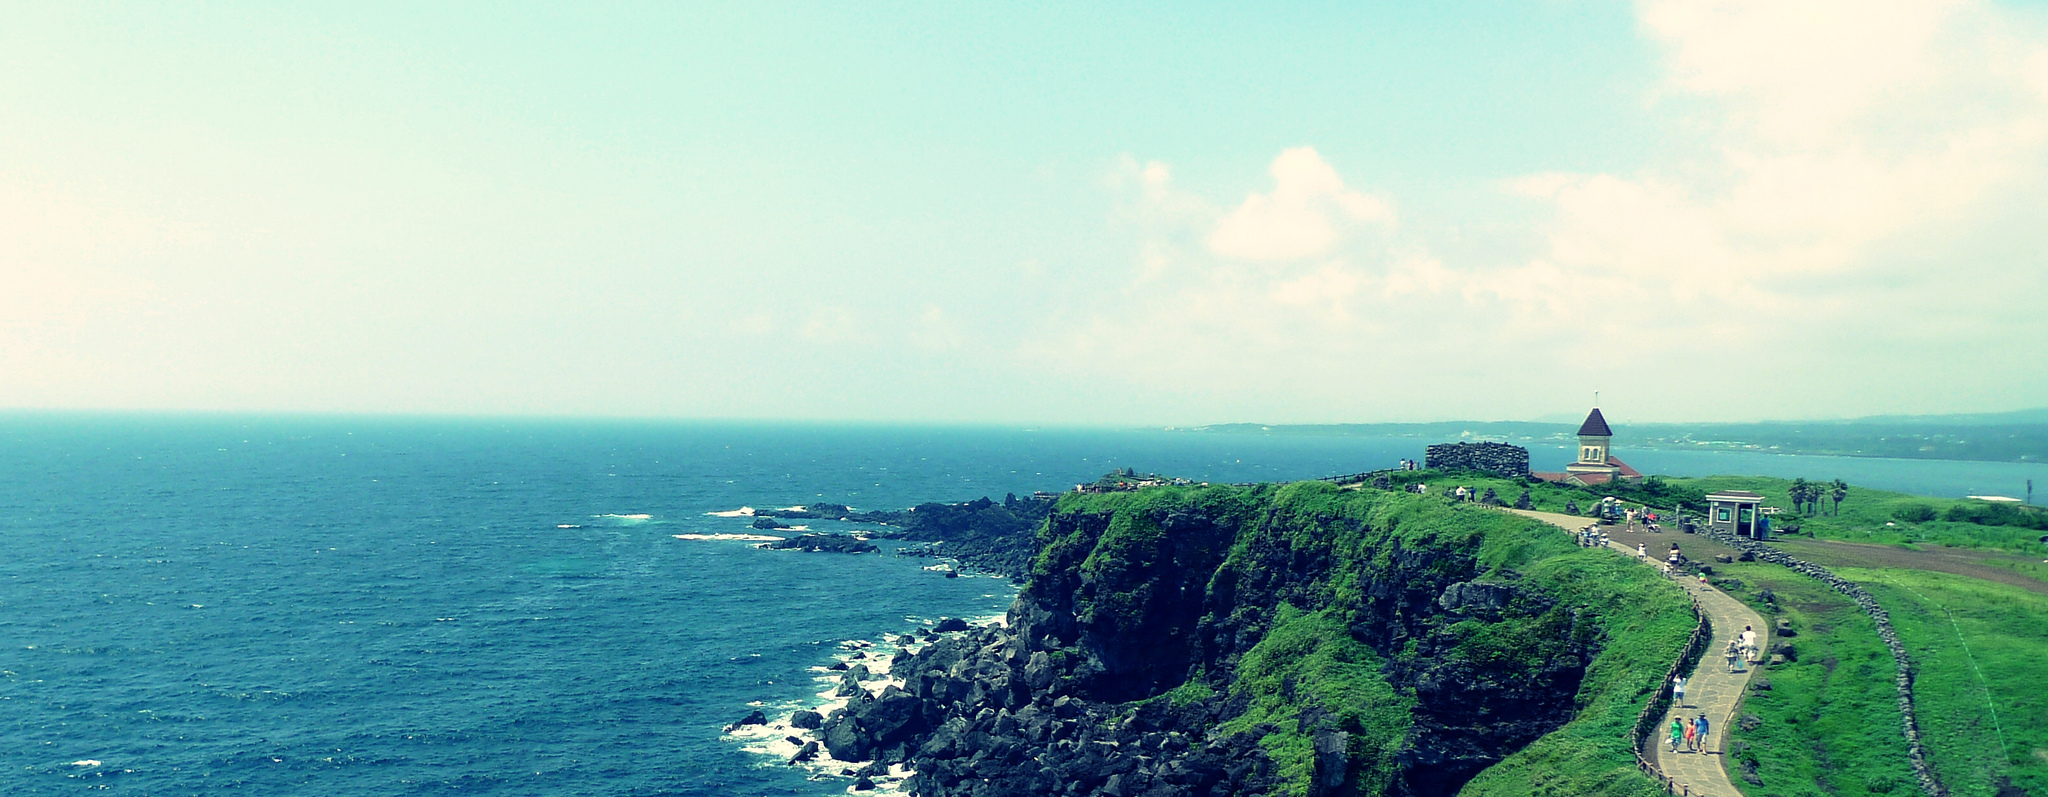 Amazing Jeju Island! Top 12 Attractions in South Korea's Holiday Island (5)